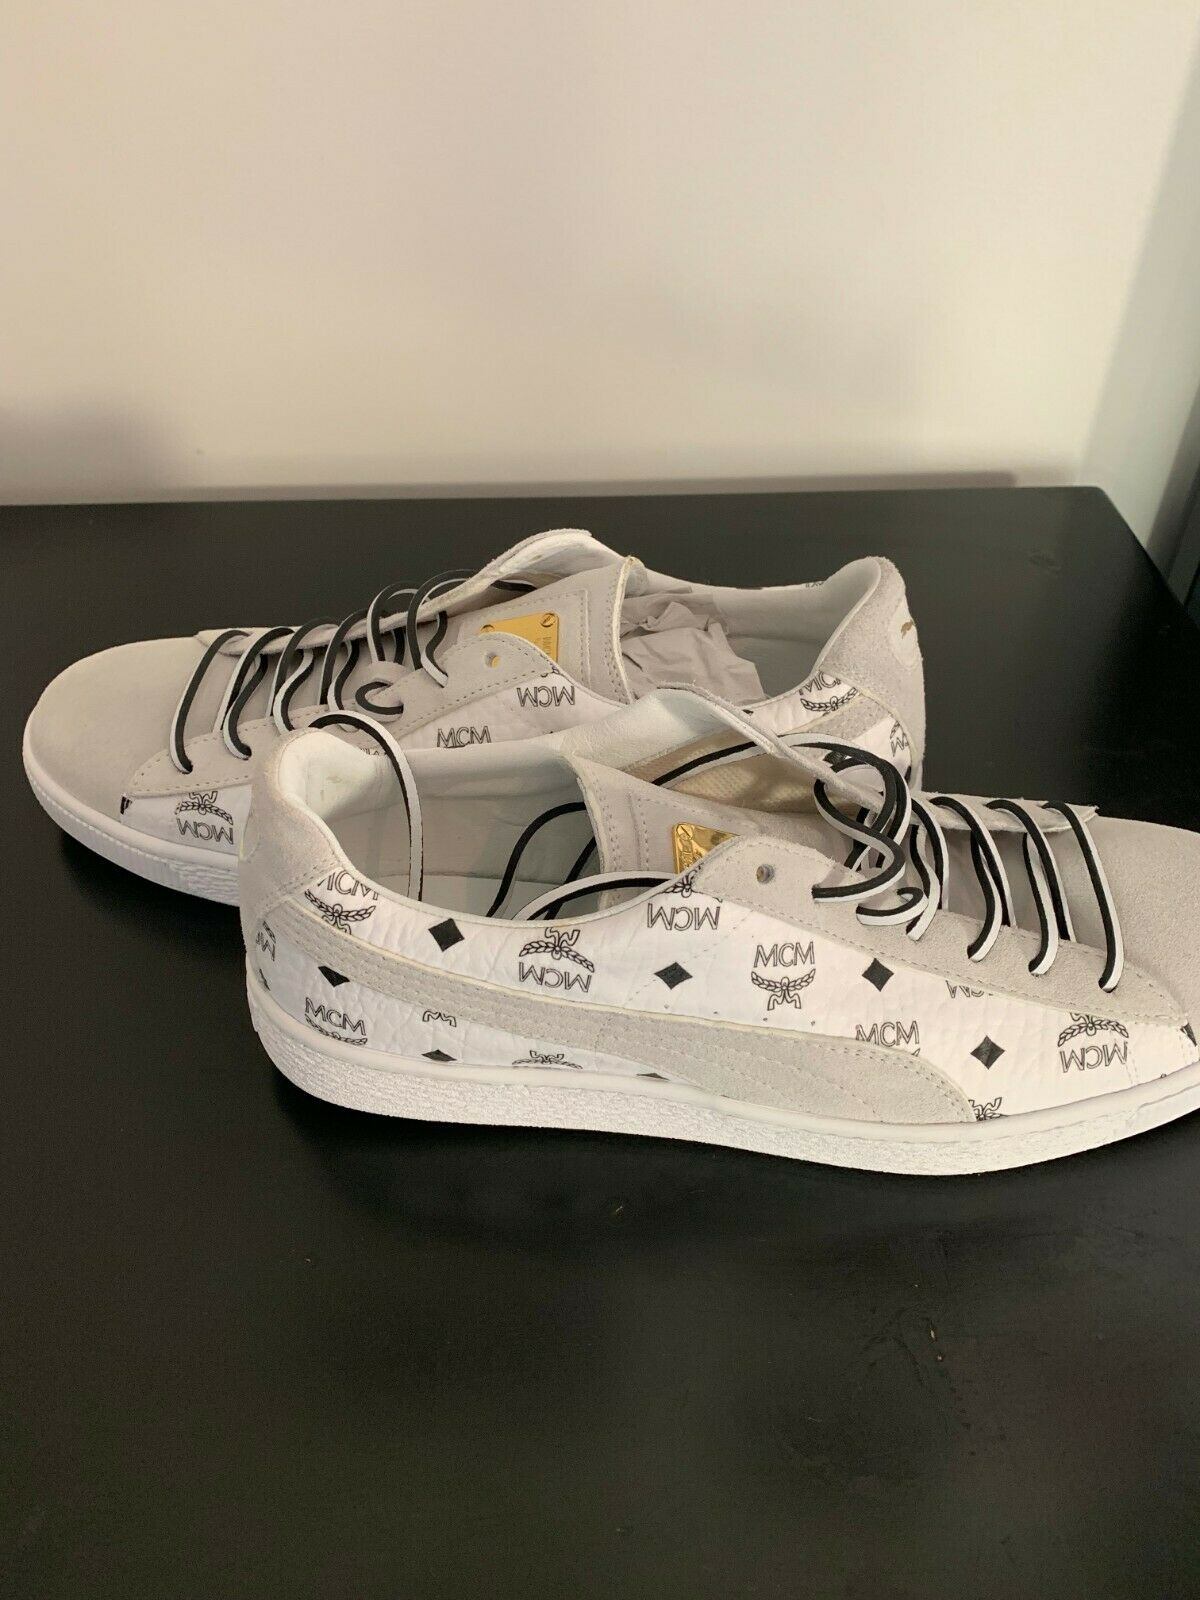 Men's PUMA Suede Classic x MCM White shoes BRAND NEW Size US 10.5